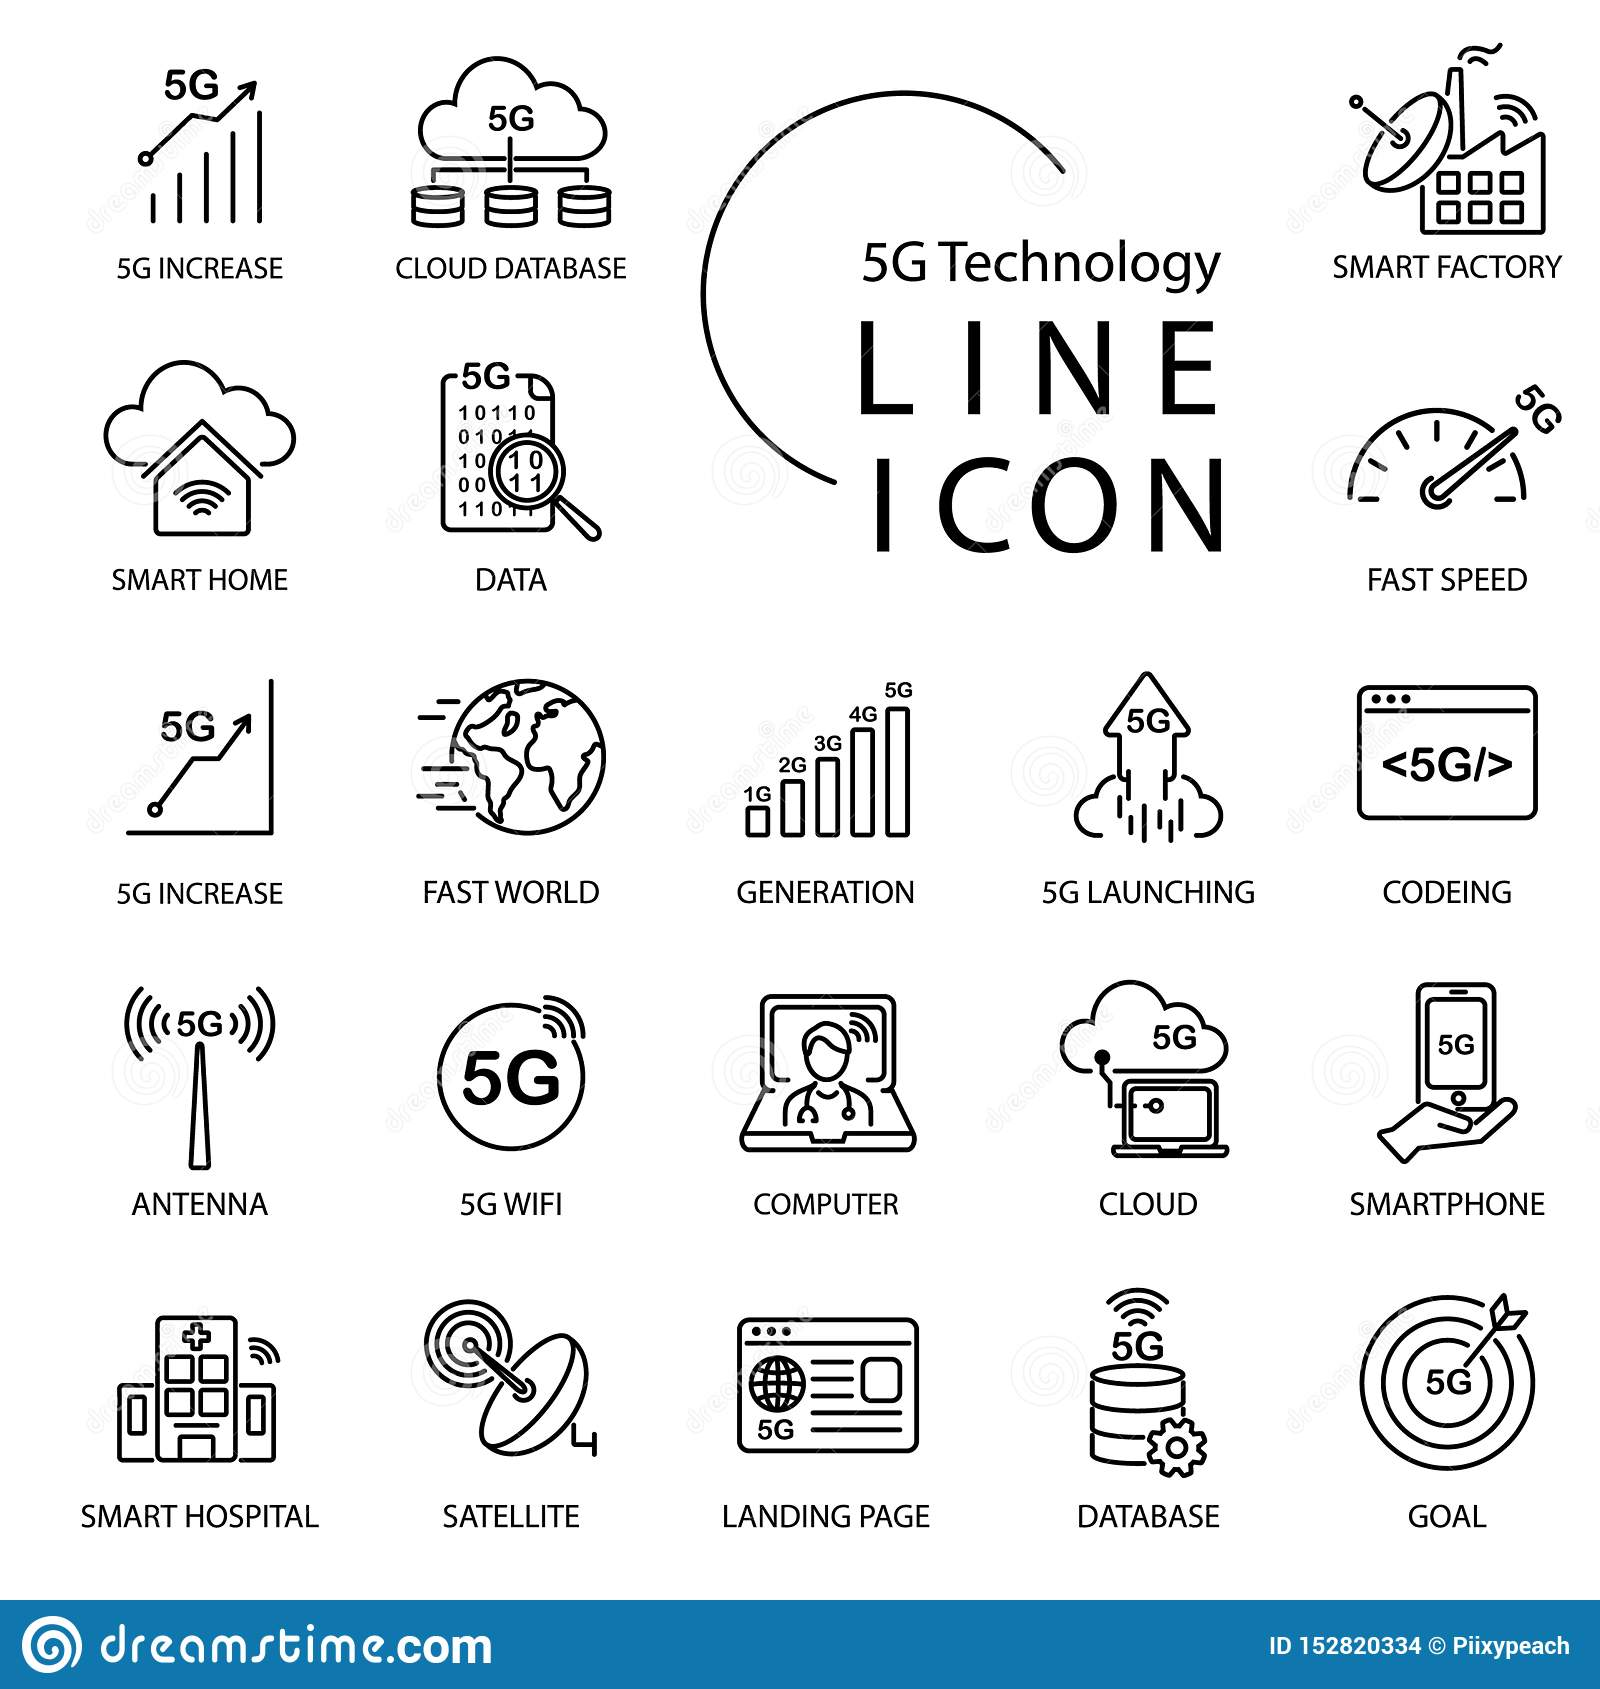 Simple line icon about 5G, Internet of thingsIOT technology. Include smart factory, wifi,network,cloud and more